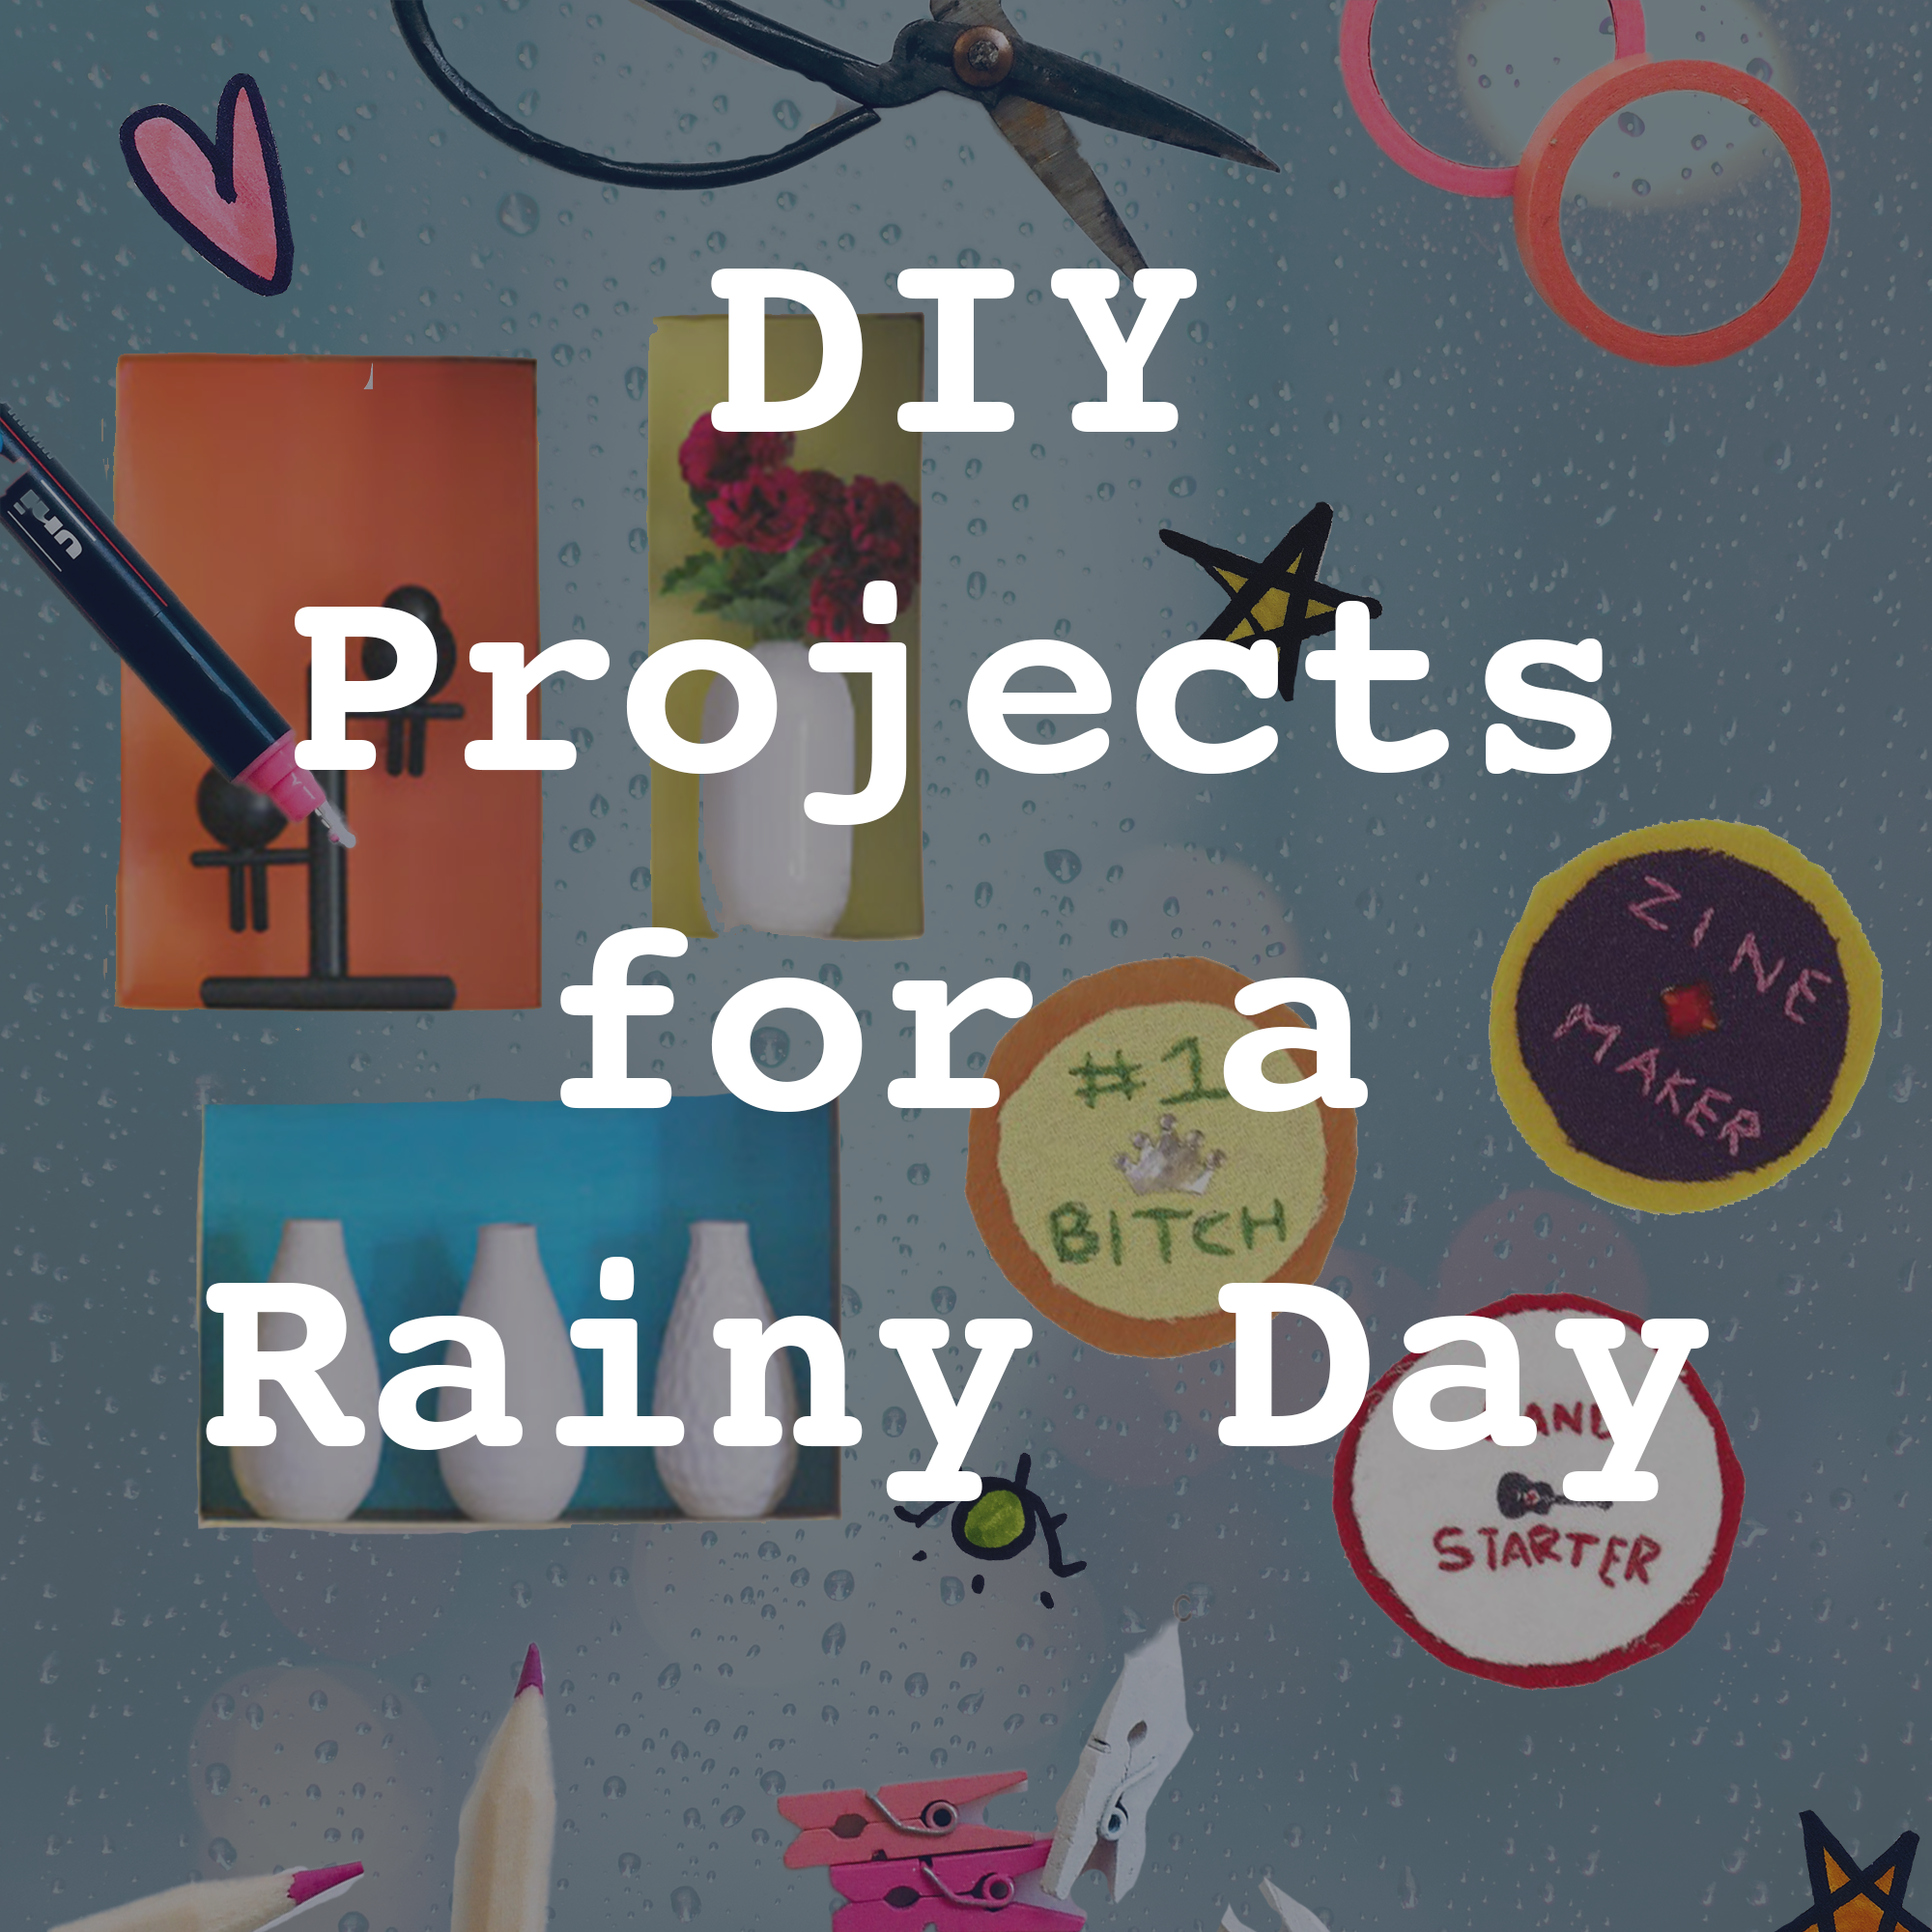 DIY-projects-for-a-rainy-day.png